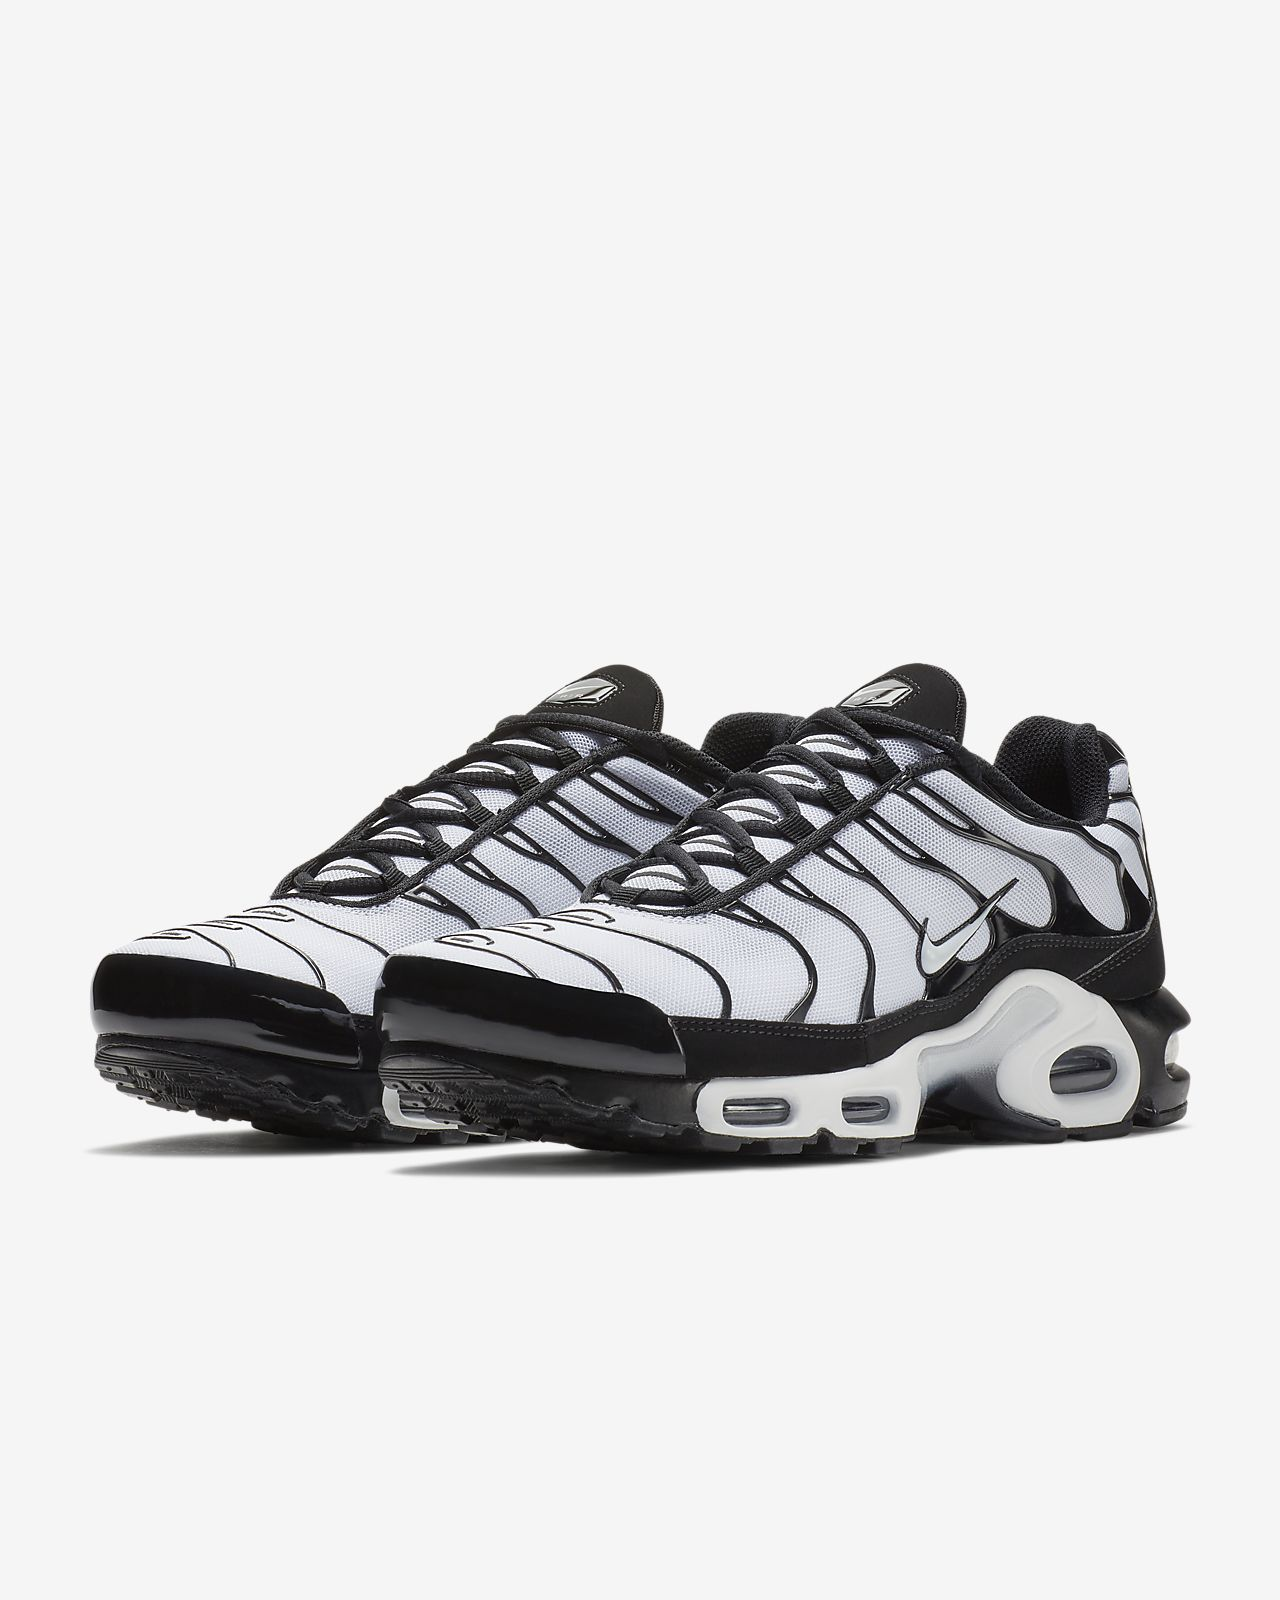 detailed look b9bb6 44e56 ... Nike Air Max Plus Men s Shoe